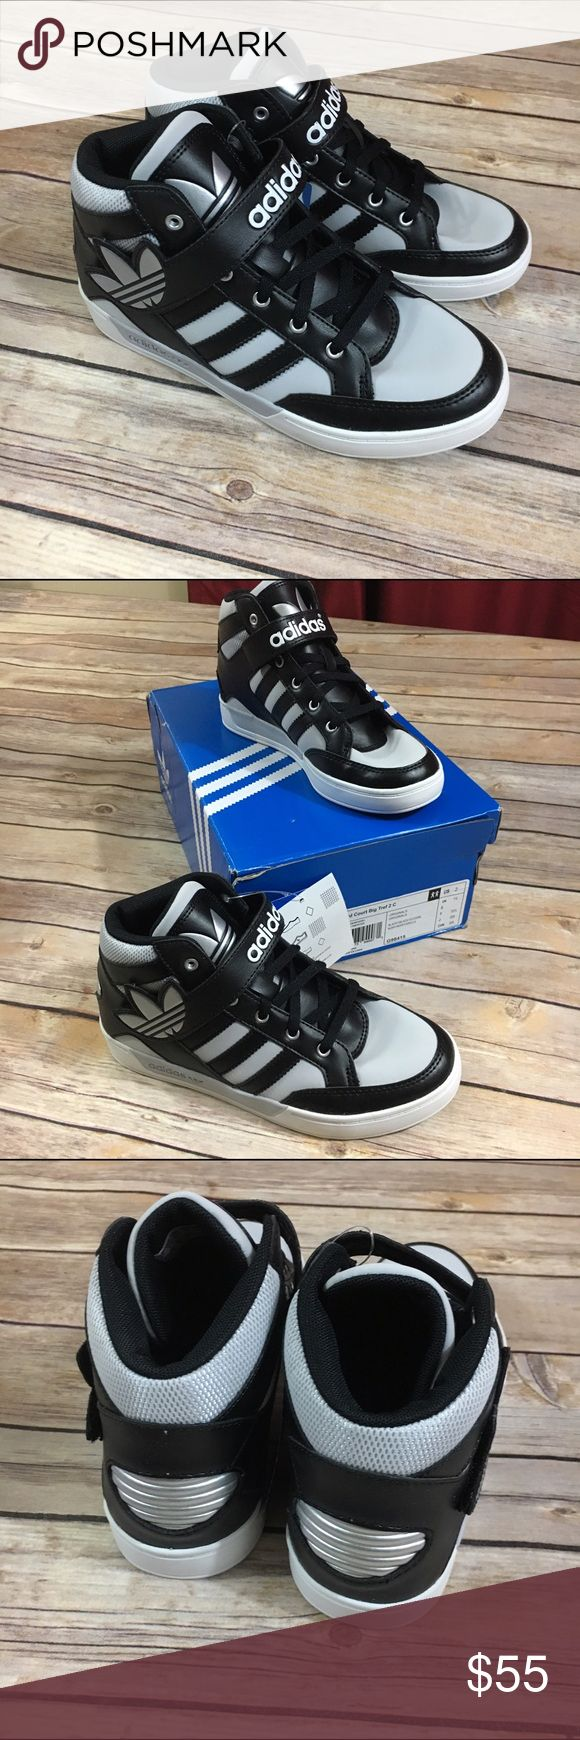 Adidas Hard Court Big Tref 2 Black Silver NEW NIB Adidas Hard Court Big Tref 2 Black Silver NEW NIB  Beautiful high top sneakers with hook and loop fastener and lace up.  New condition.  #adidas #hardcourt #bigtref #black #silver #hightops #basketball #kicks #coolkicks #new #nib #shoes #basketballshoes Adidas Shoes Sneakers